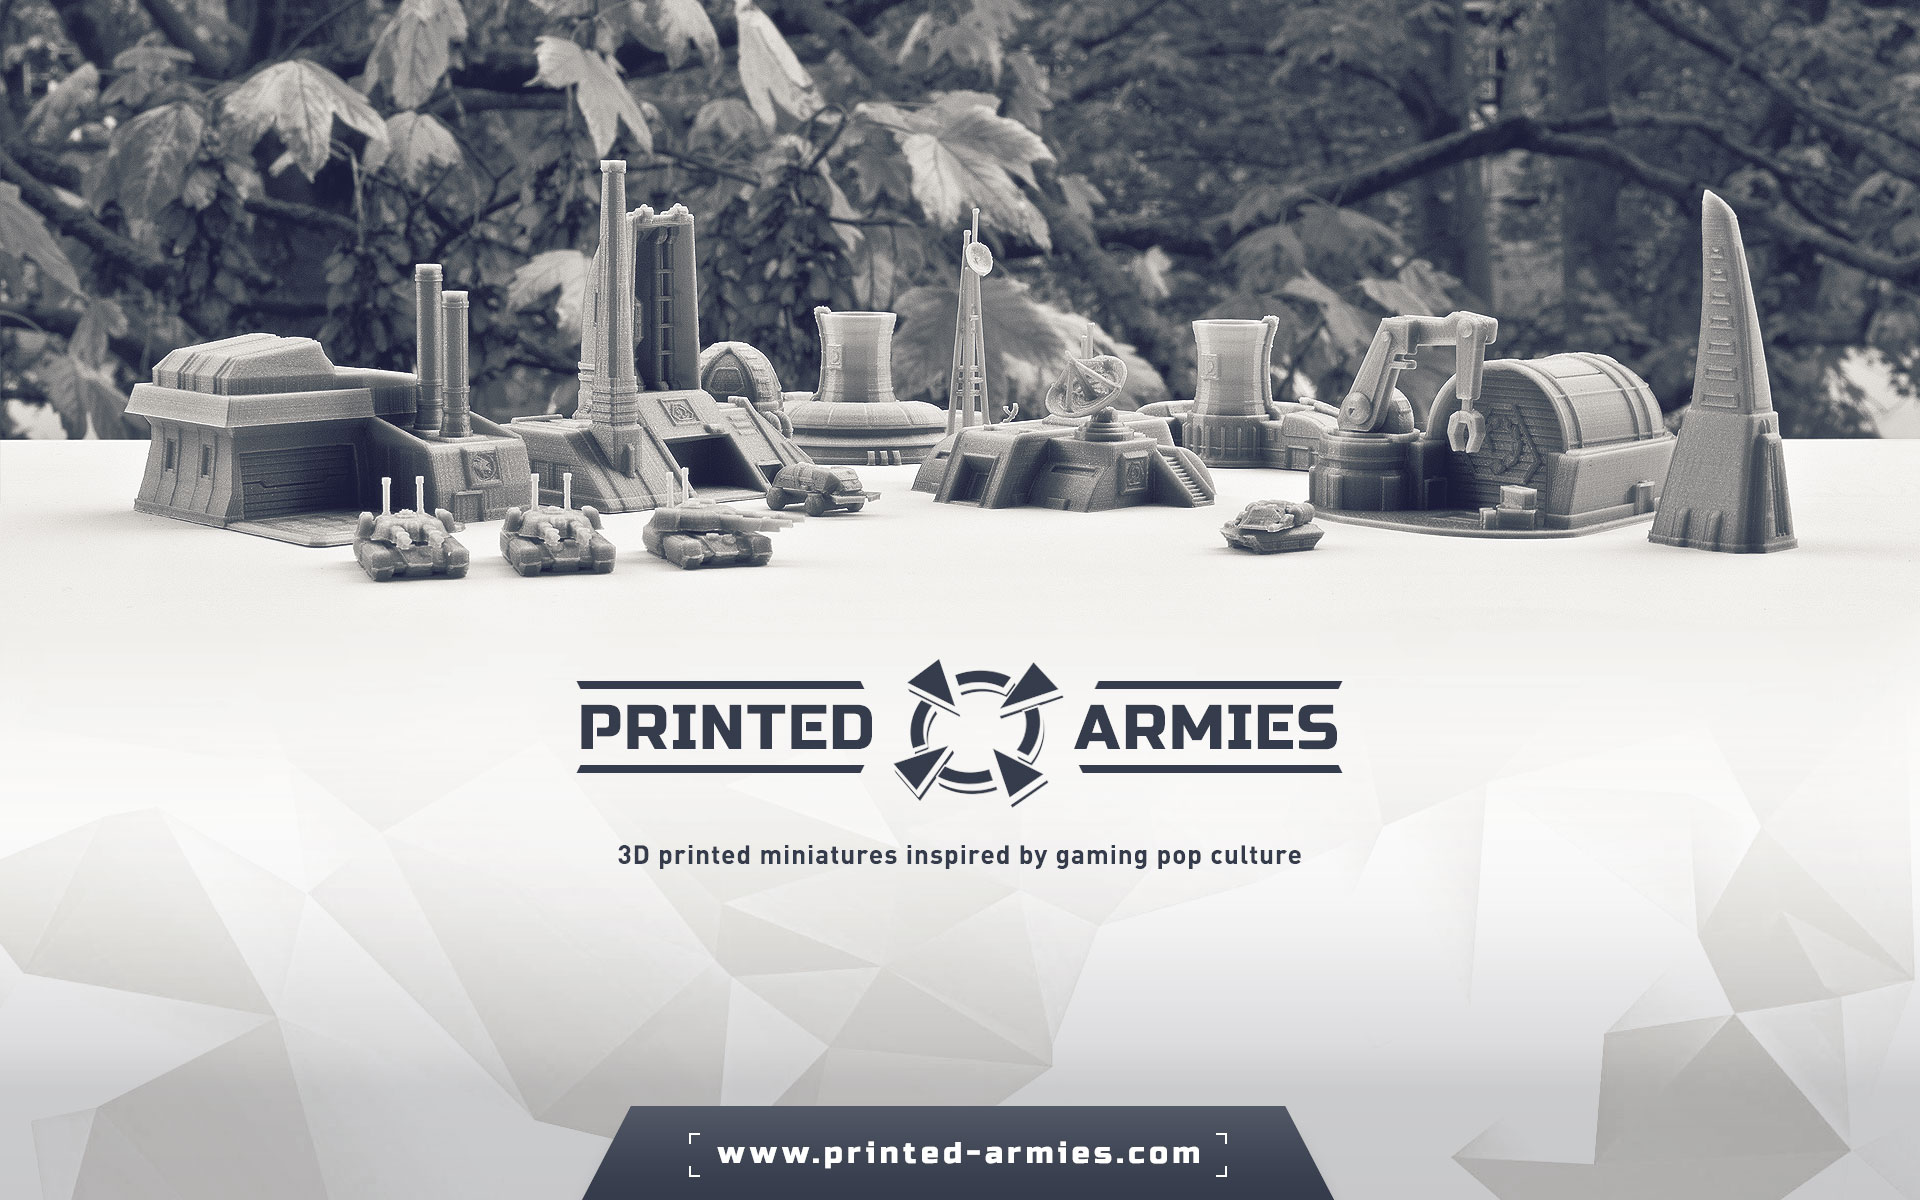 printed-armies-wallpaper03